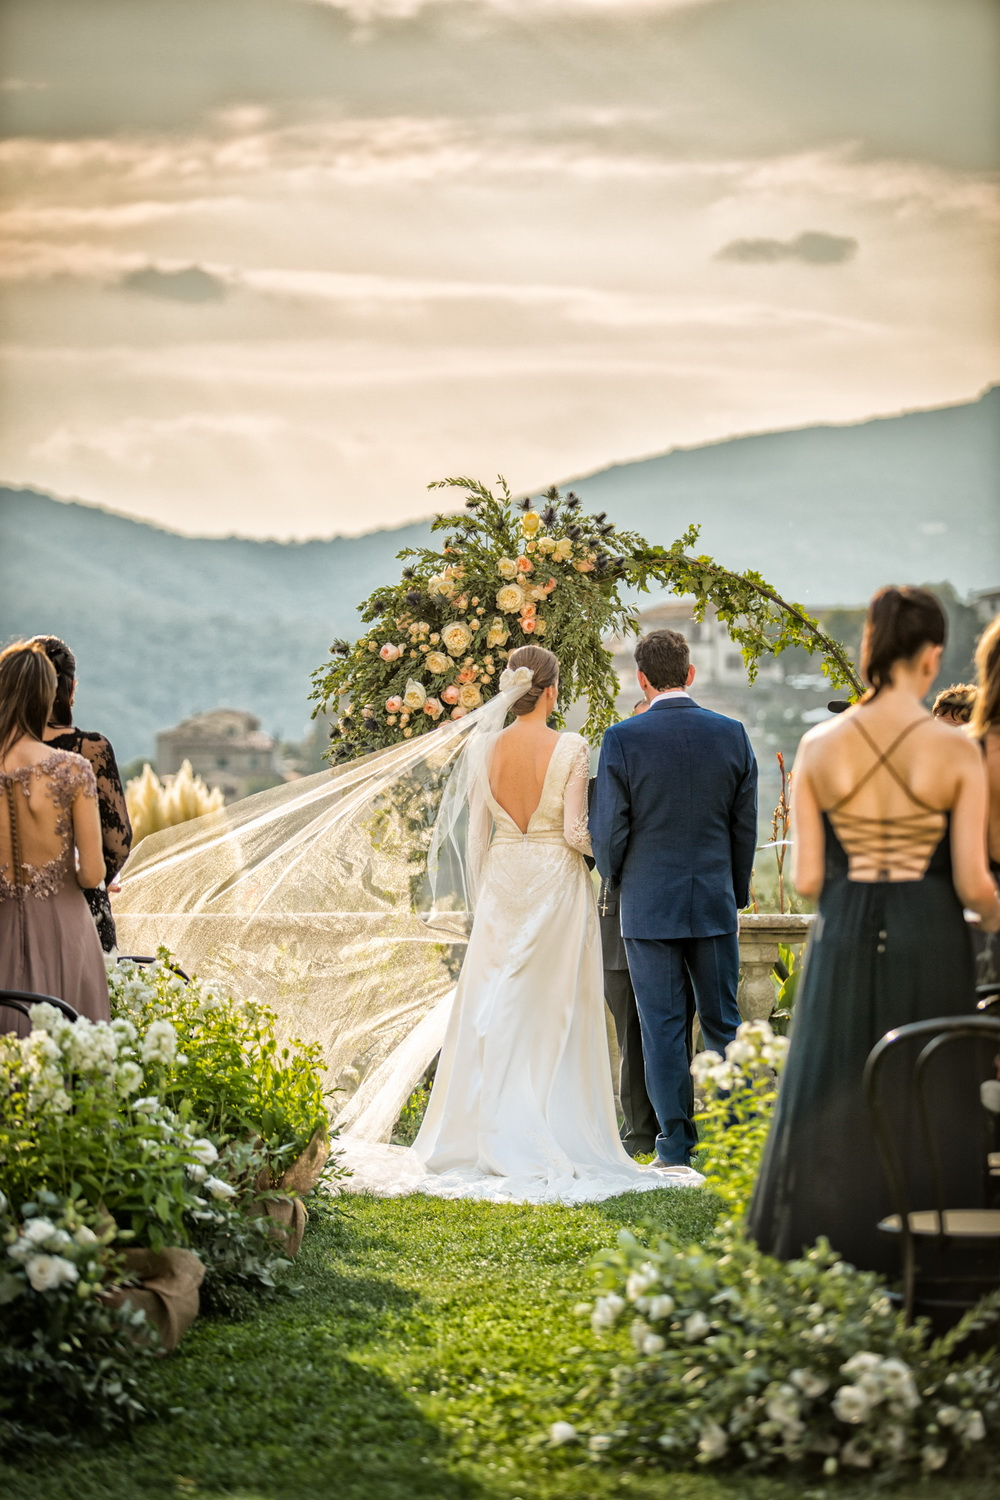 Destination Wedding Toscana | Caroline e Fernando destination wedding na toscana | caroline e fernando Destination Wedding na Toscana | Caroline e Fernando marco zammarchi destination wedding 23